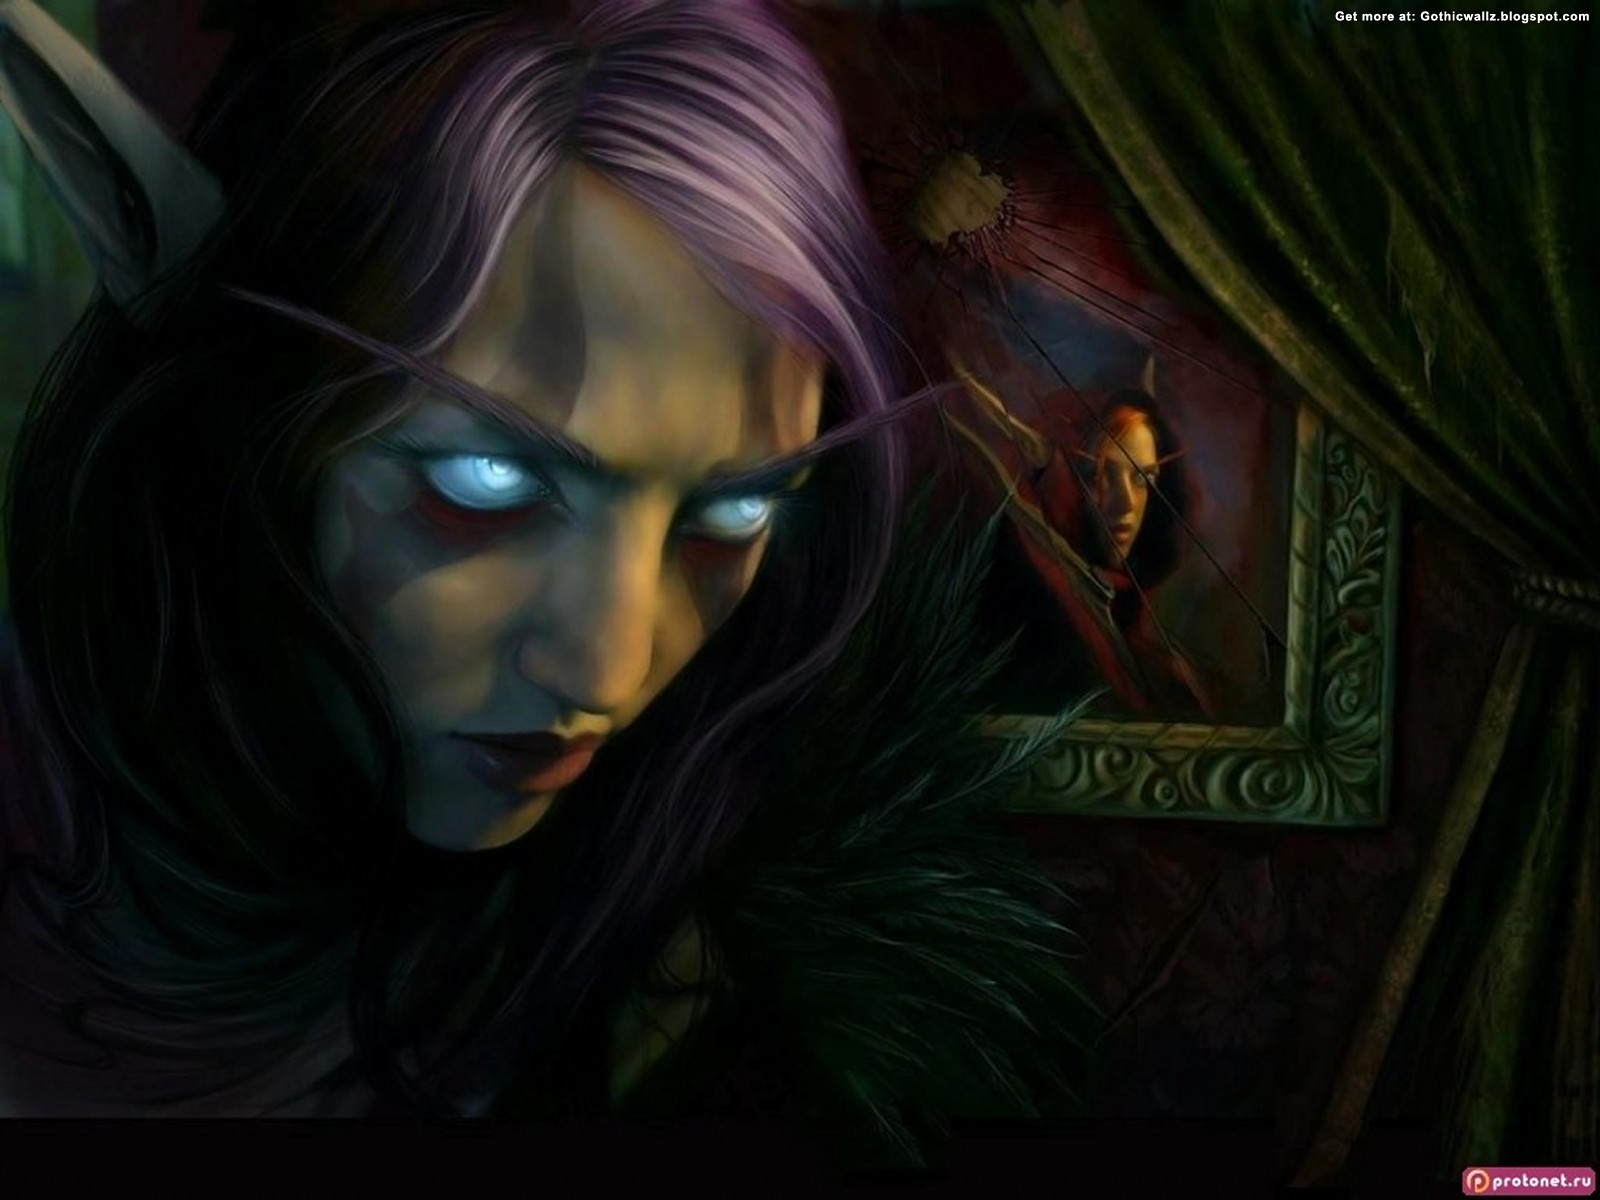 Evil look   Dark Gothic Wallpapers   FREE Gothic Wallpaper   Dark Art 1600x1200